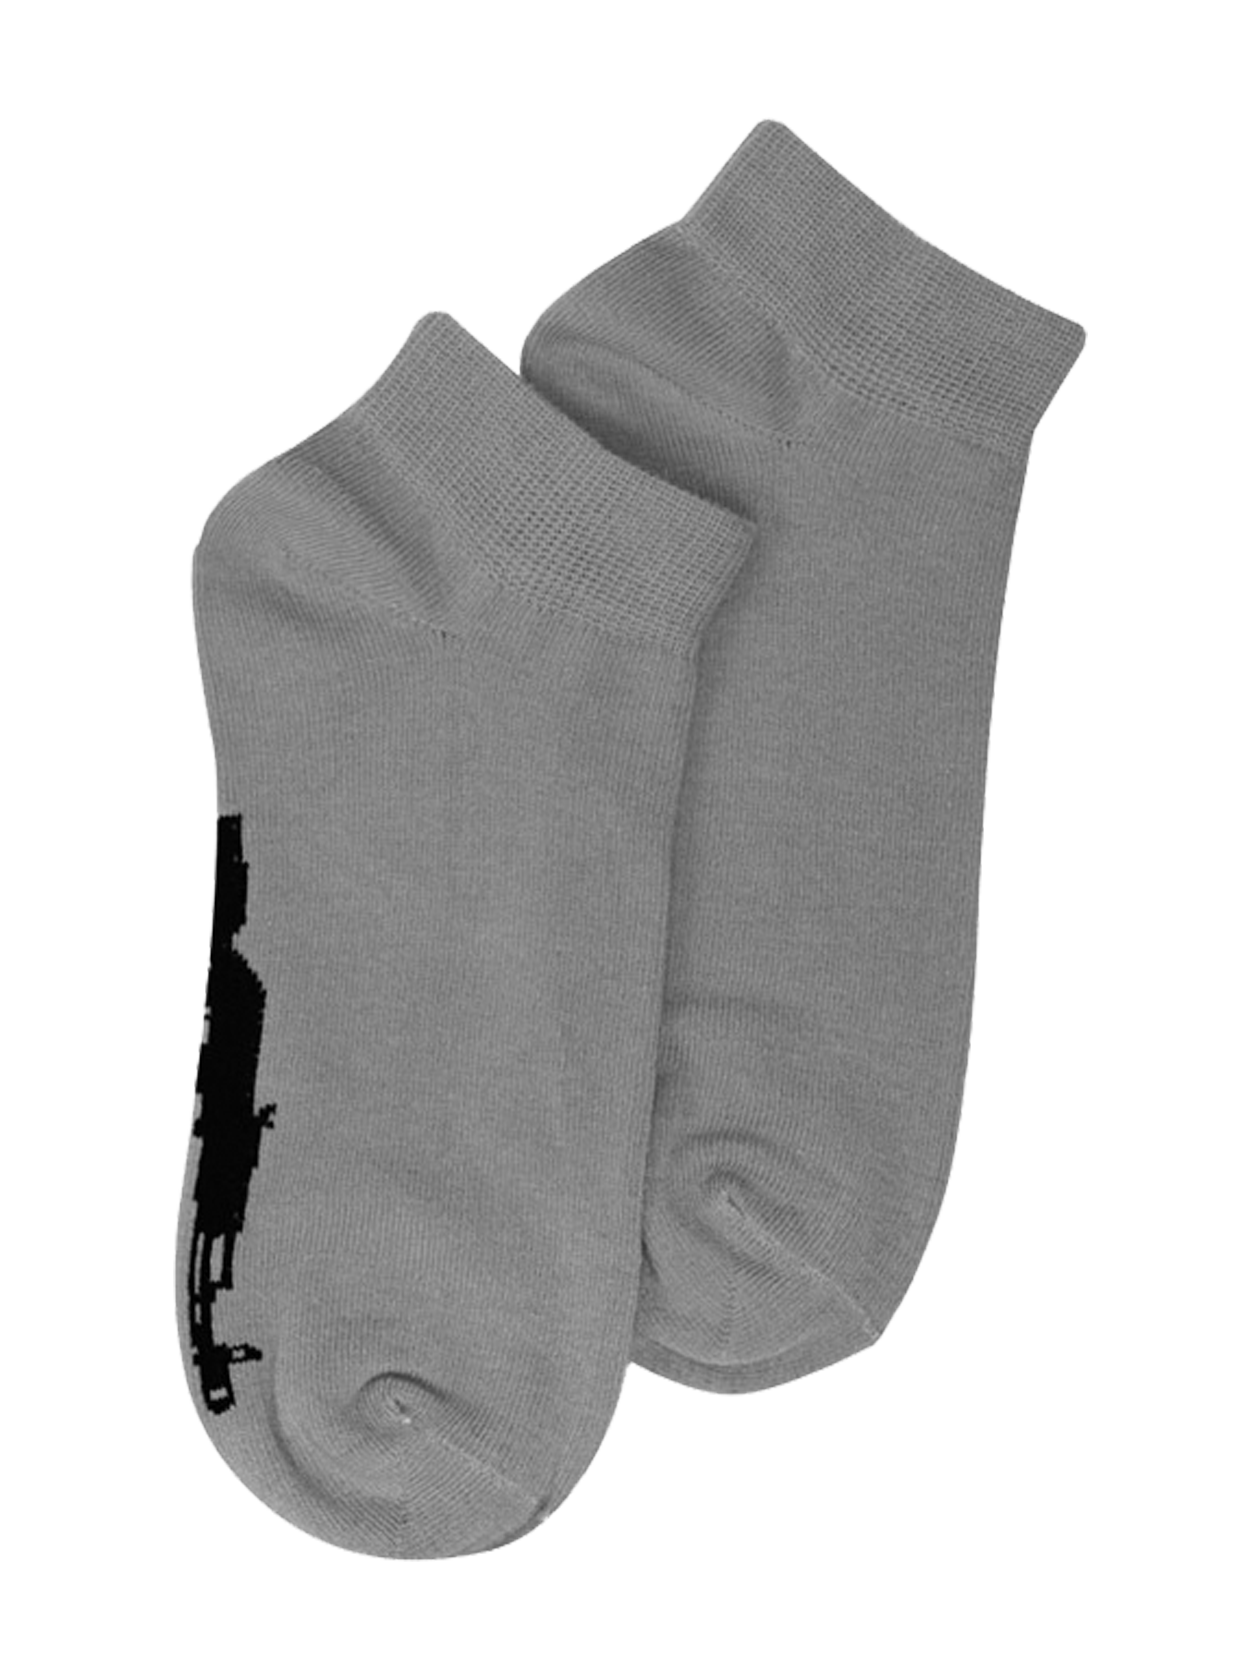 Unisex Socks RIFLE middle